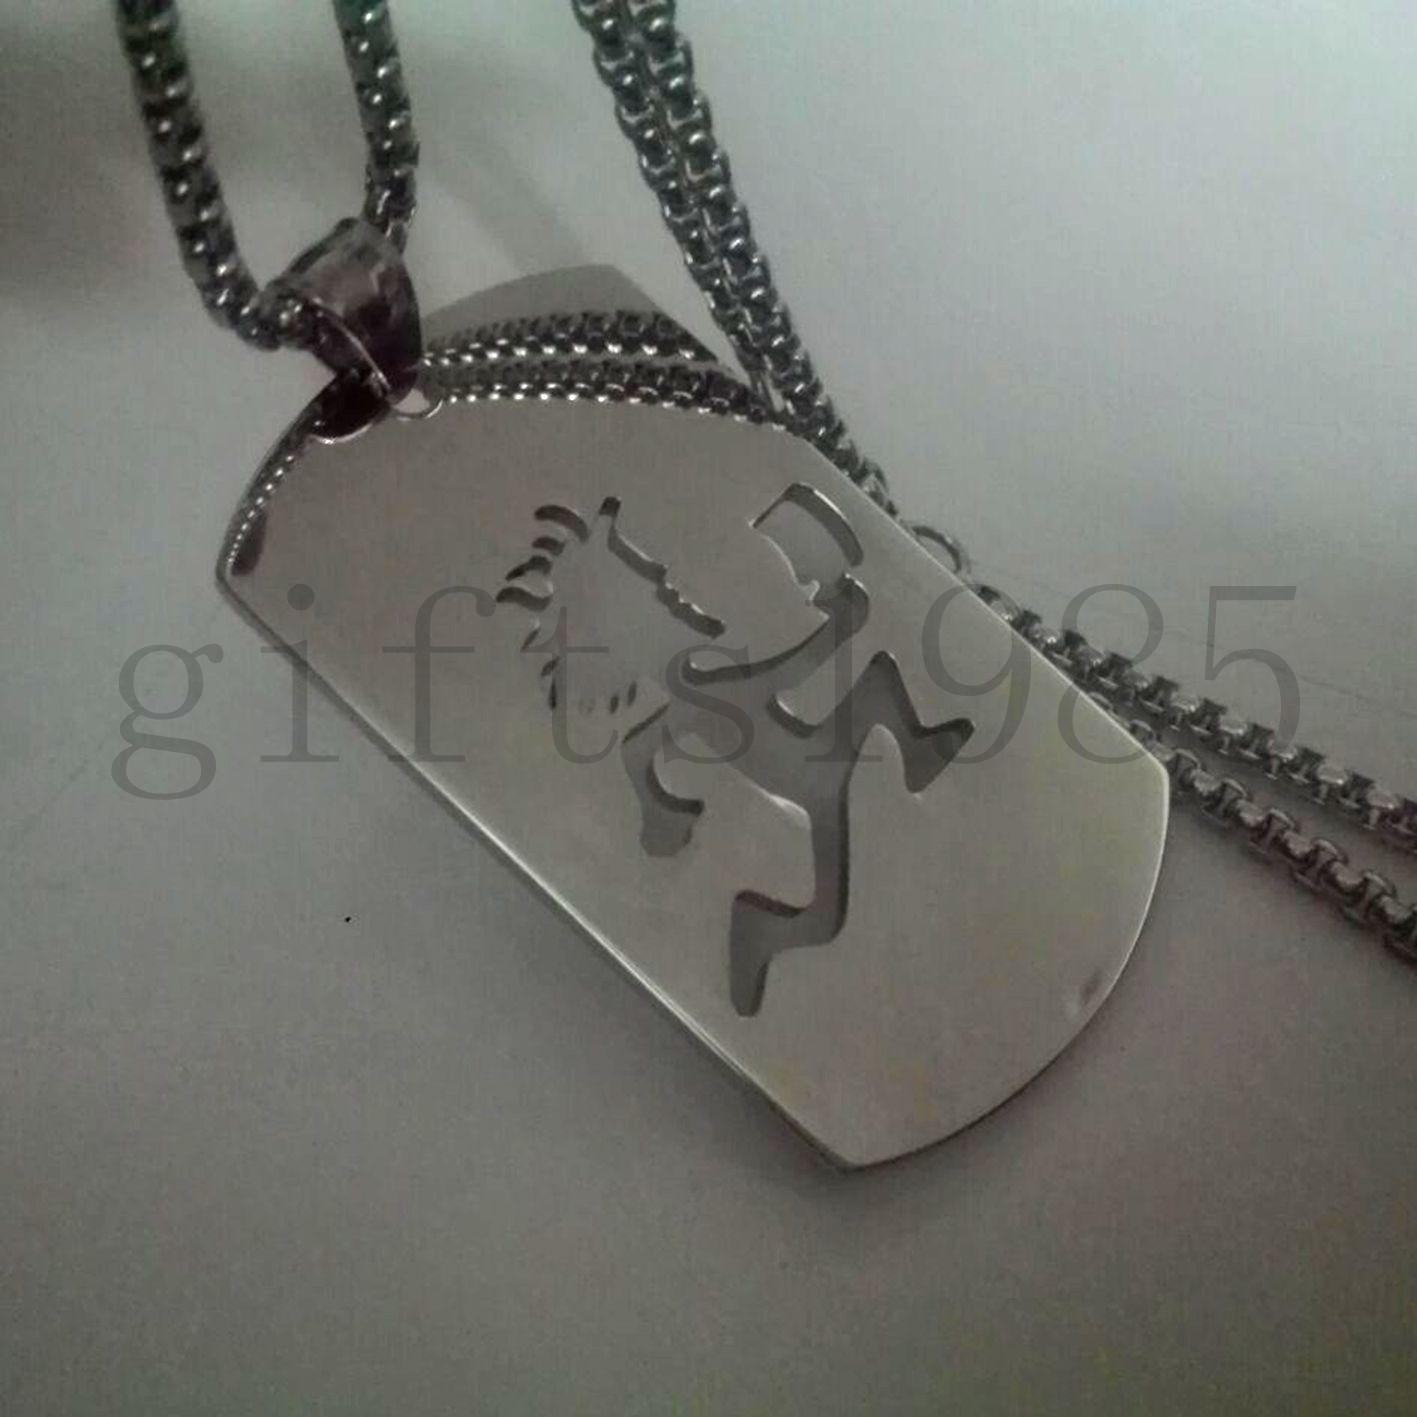 2 en hatchetman ICP peinado cool music charm dog tag colgante / collar de 30 pulgadas